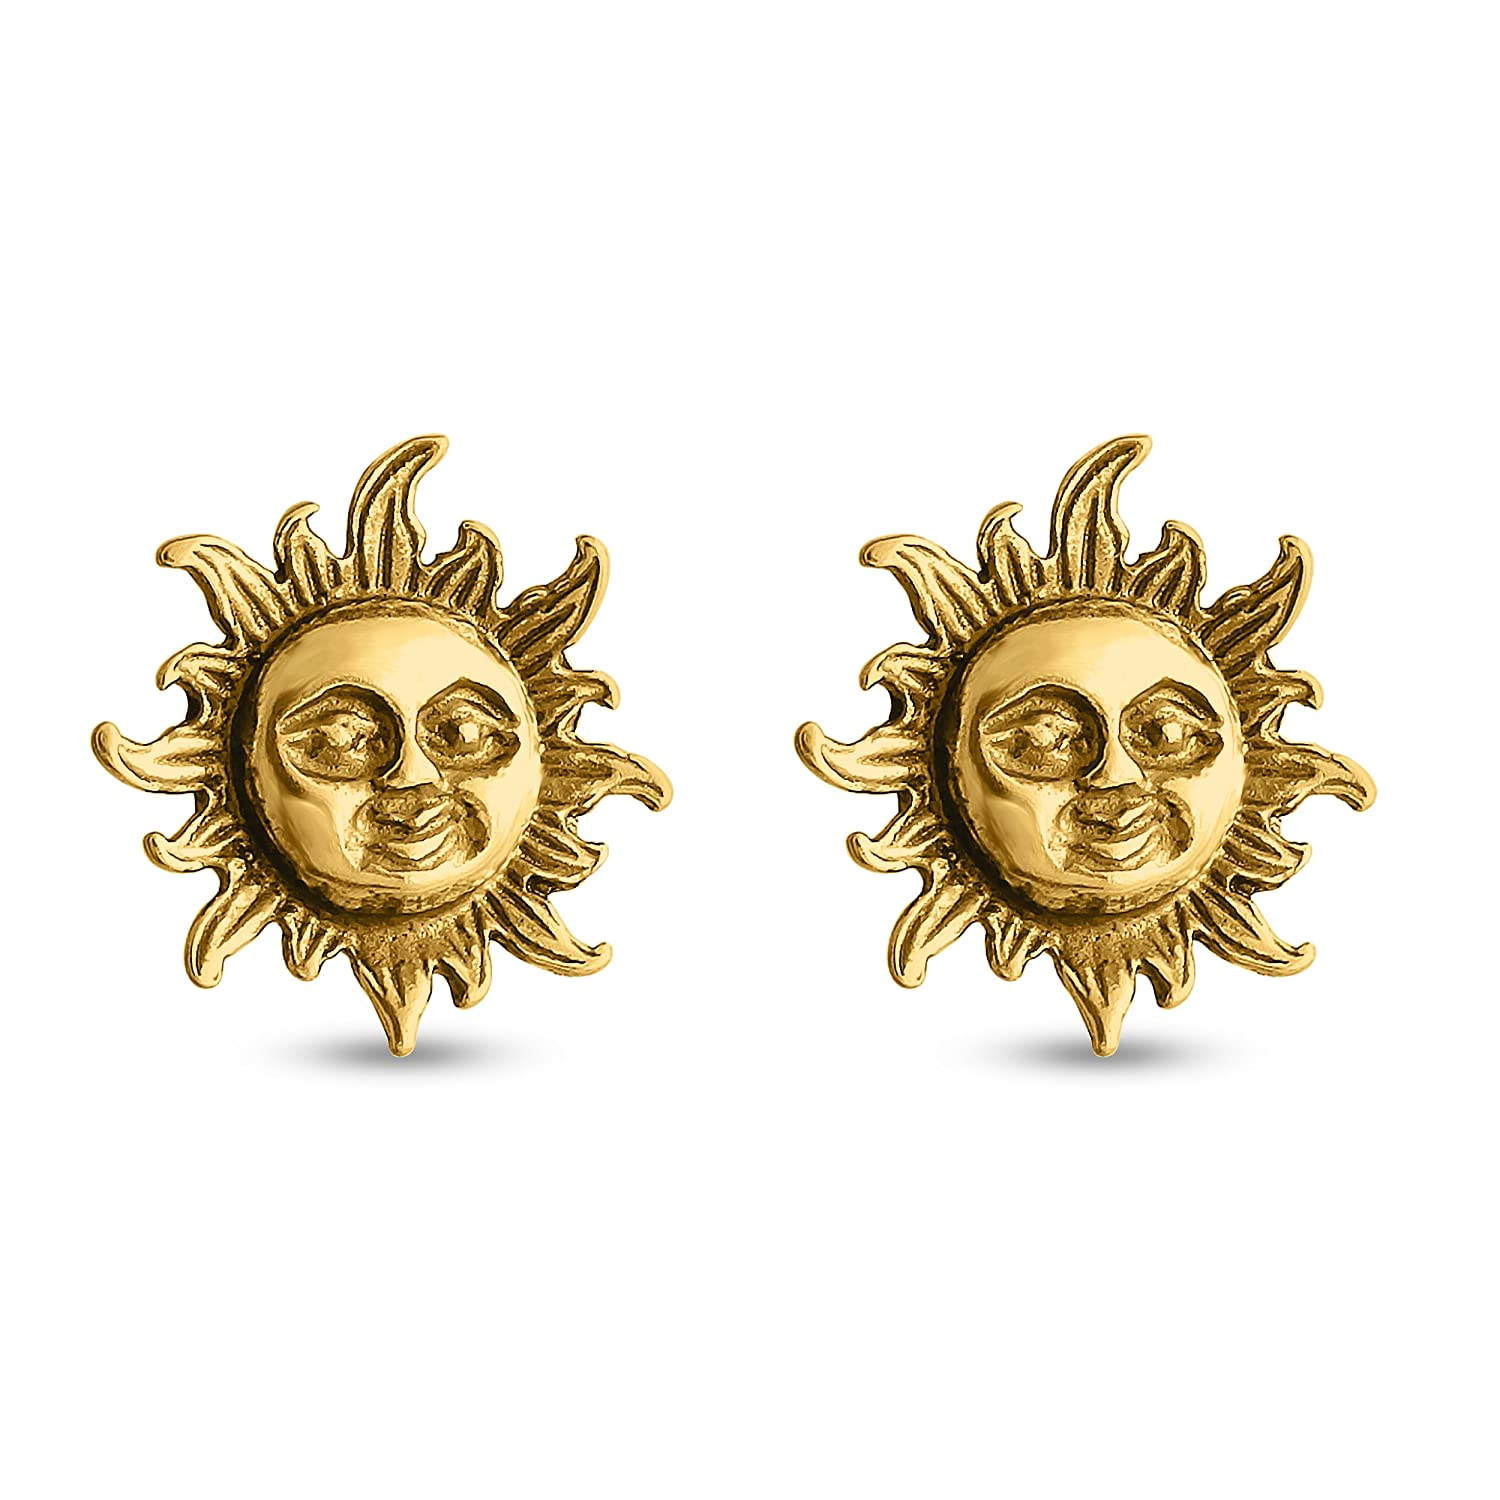 Azaggi Stud Smiling Sun Stud Earrings 925 Sterling Silver Earrings Gold Plated Earrings.These Stud Earrings are the perfect jewelry gift for women